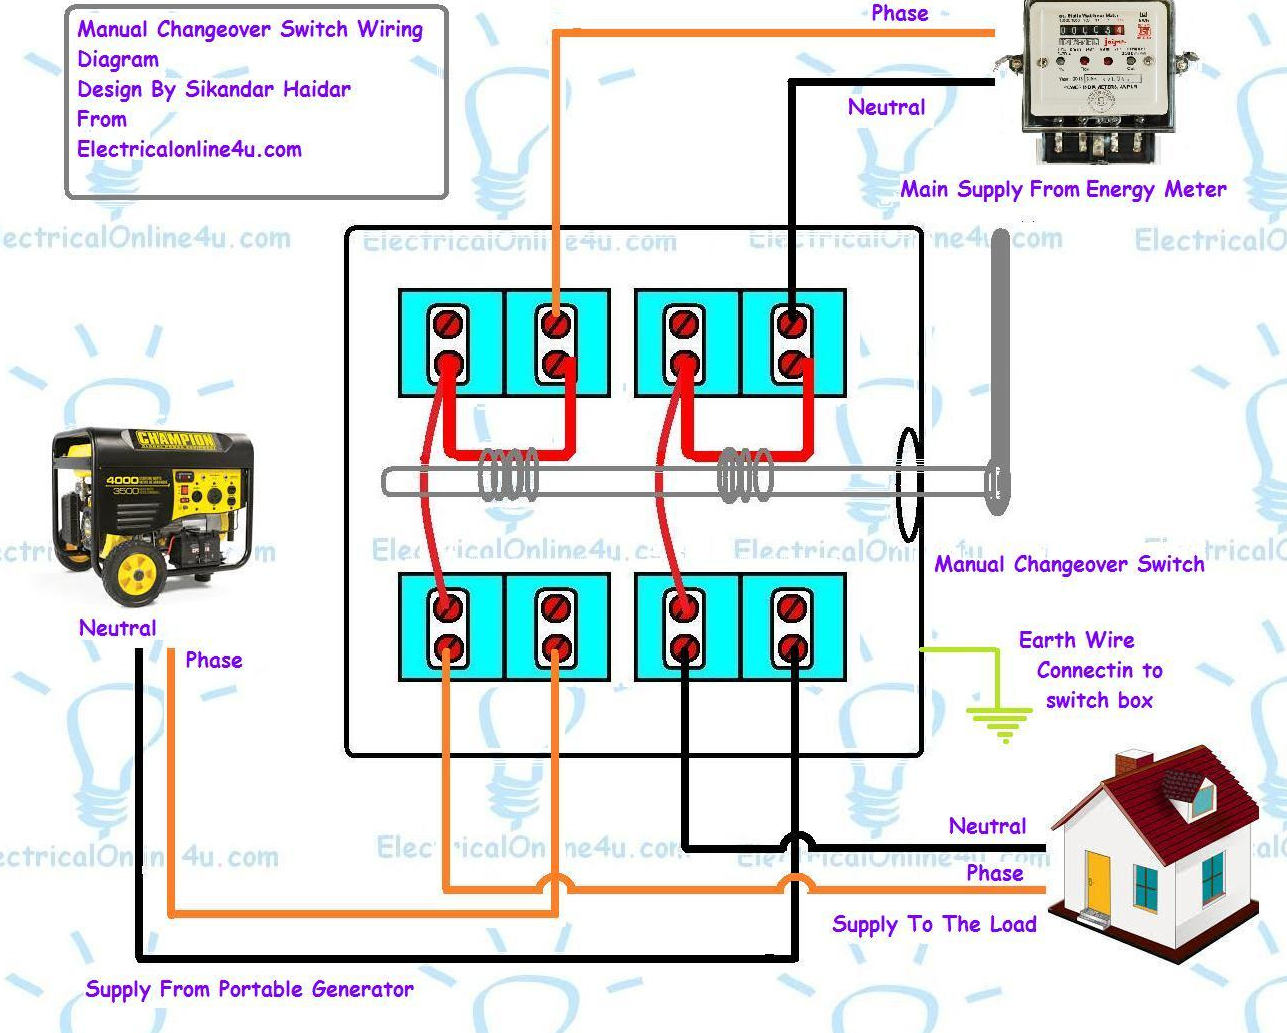 Battle Switch Wiring Diagram - Aquastat Wiring Diagram Hi Lo -  valkyrie.nescafe.jeanjaures37.fr | Battle Switch Wiring Diagram |  | Wiring Diagram Resource